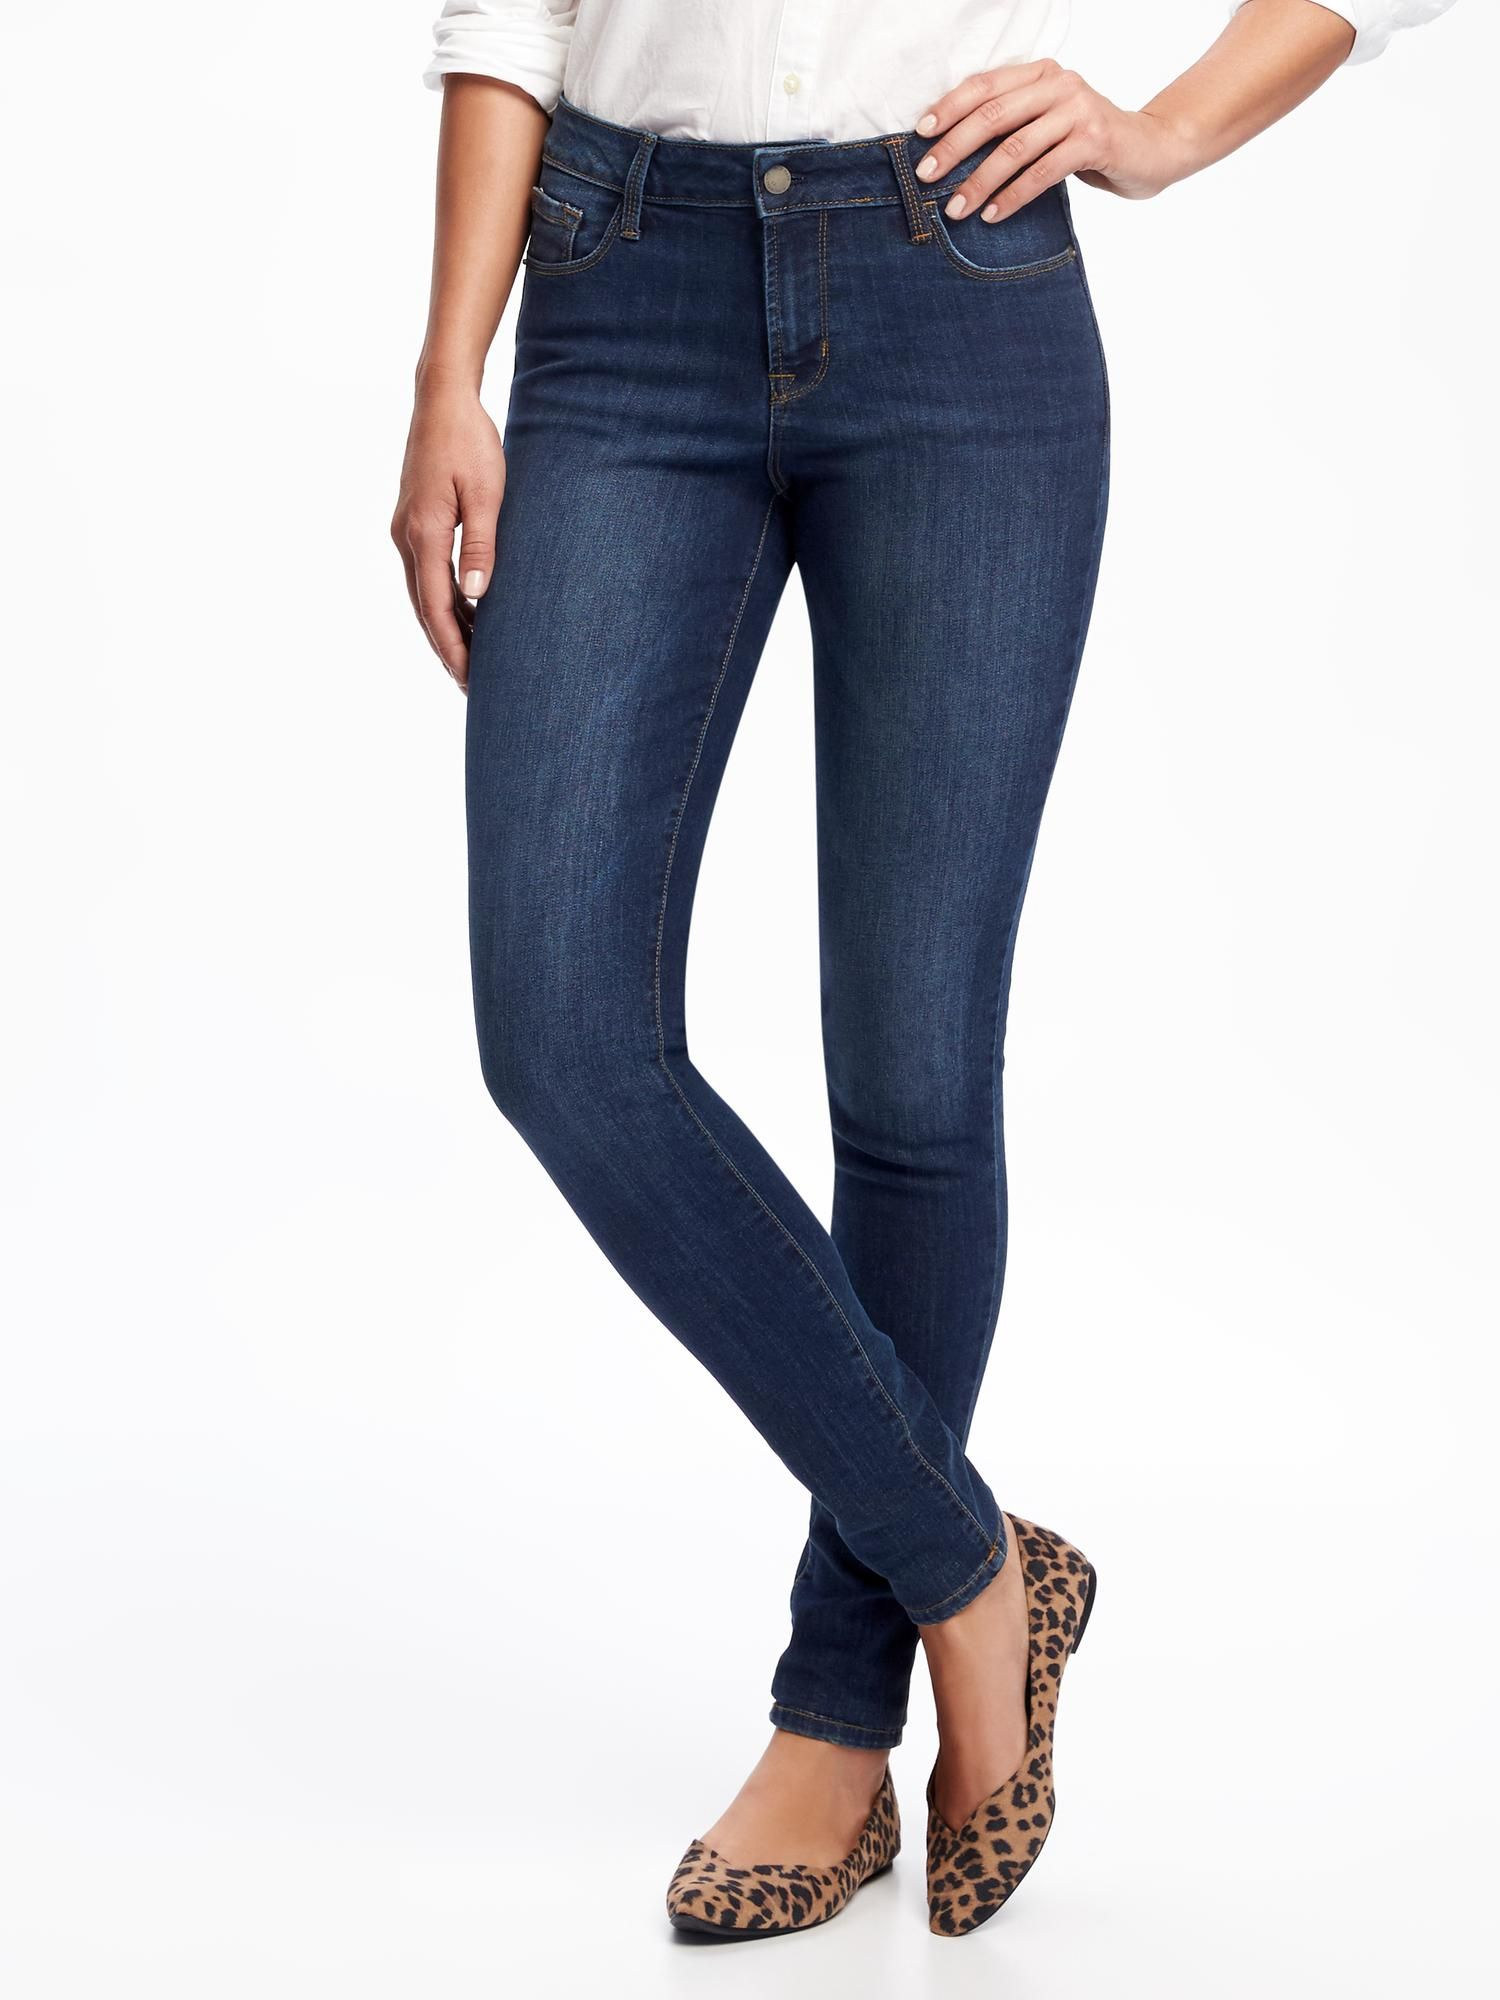 44+ Old navy high waisted jeans ideas ideas in 2021